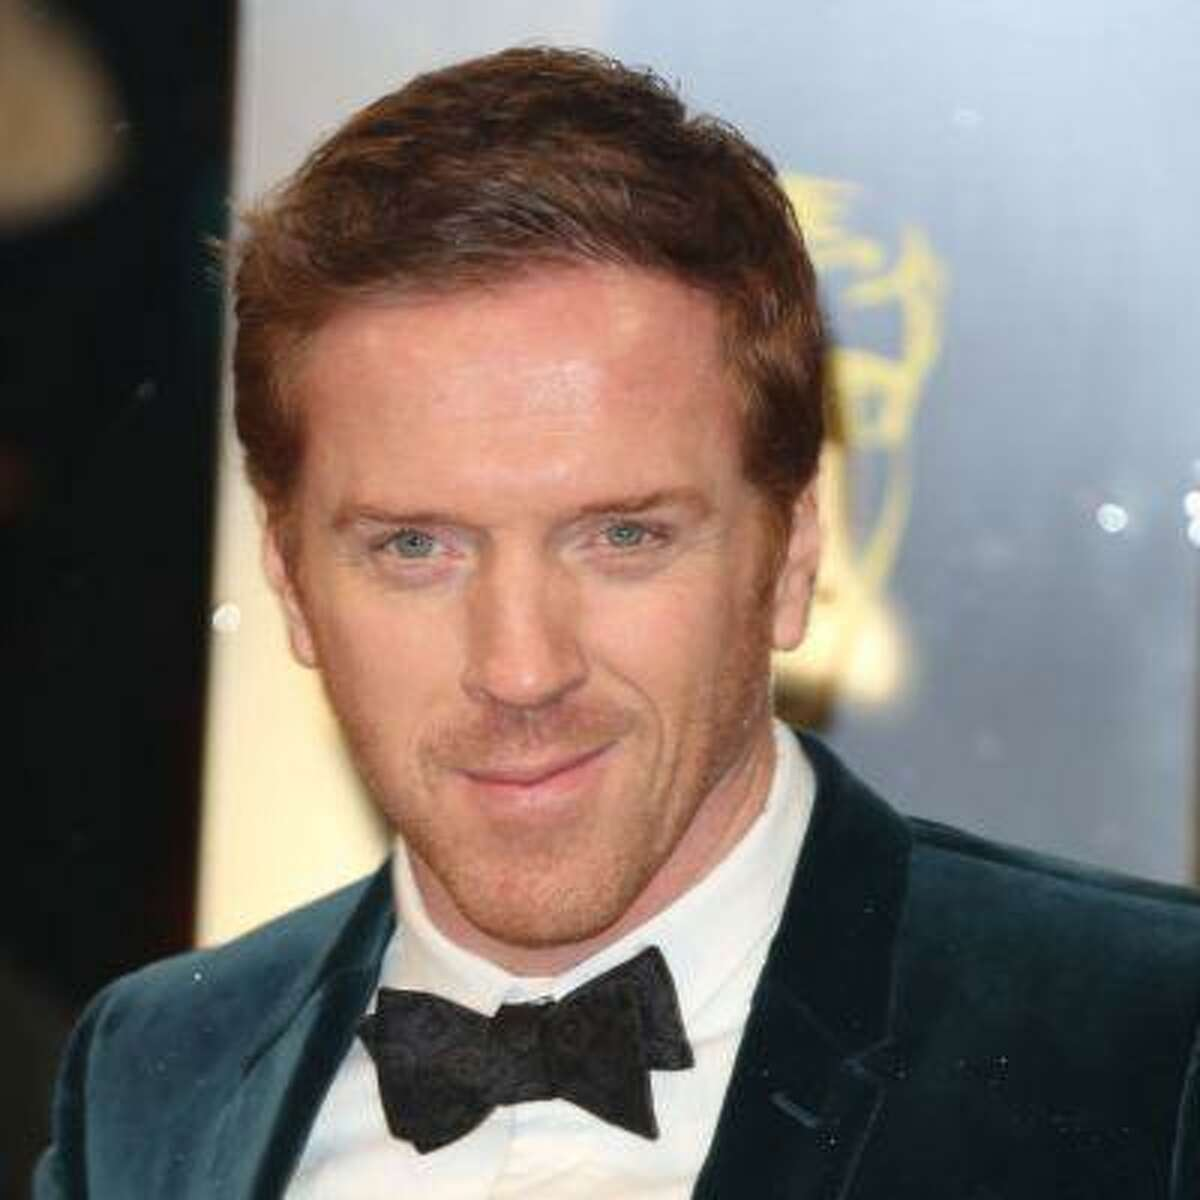 The 2013 EE British Academy Film Awards (BAFTA'S) held at the Royal Opera House - Arrivals Featuring: Damian Lewis Where: London, United Kingdom When: 10 Feb 2013 Credit: Lia Toby/WENN.com